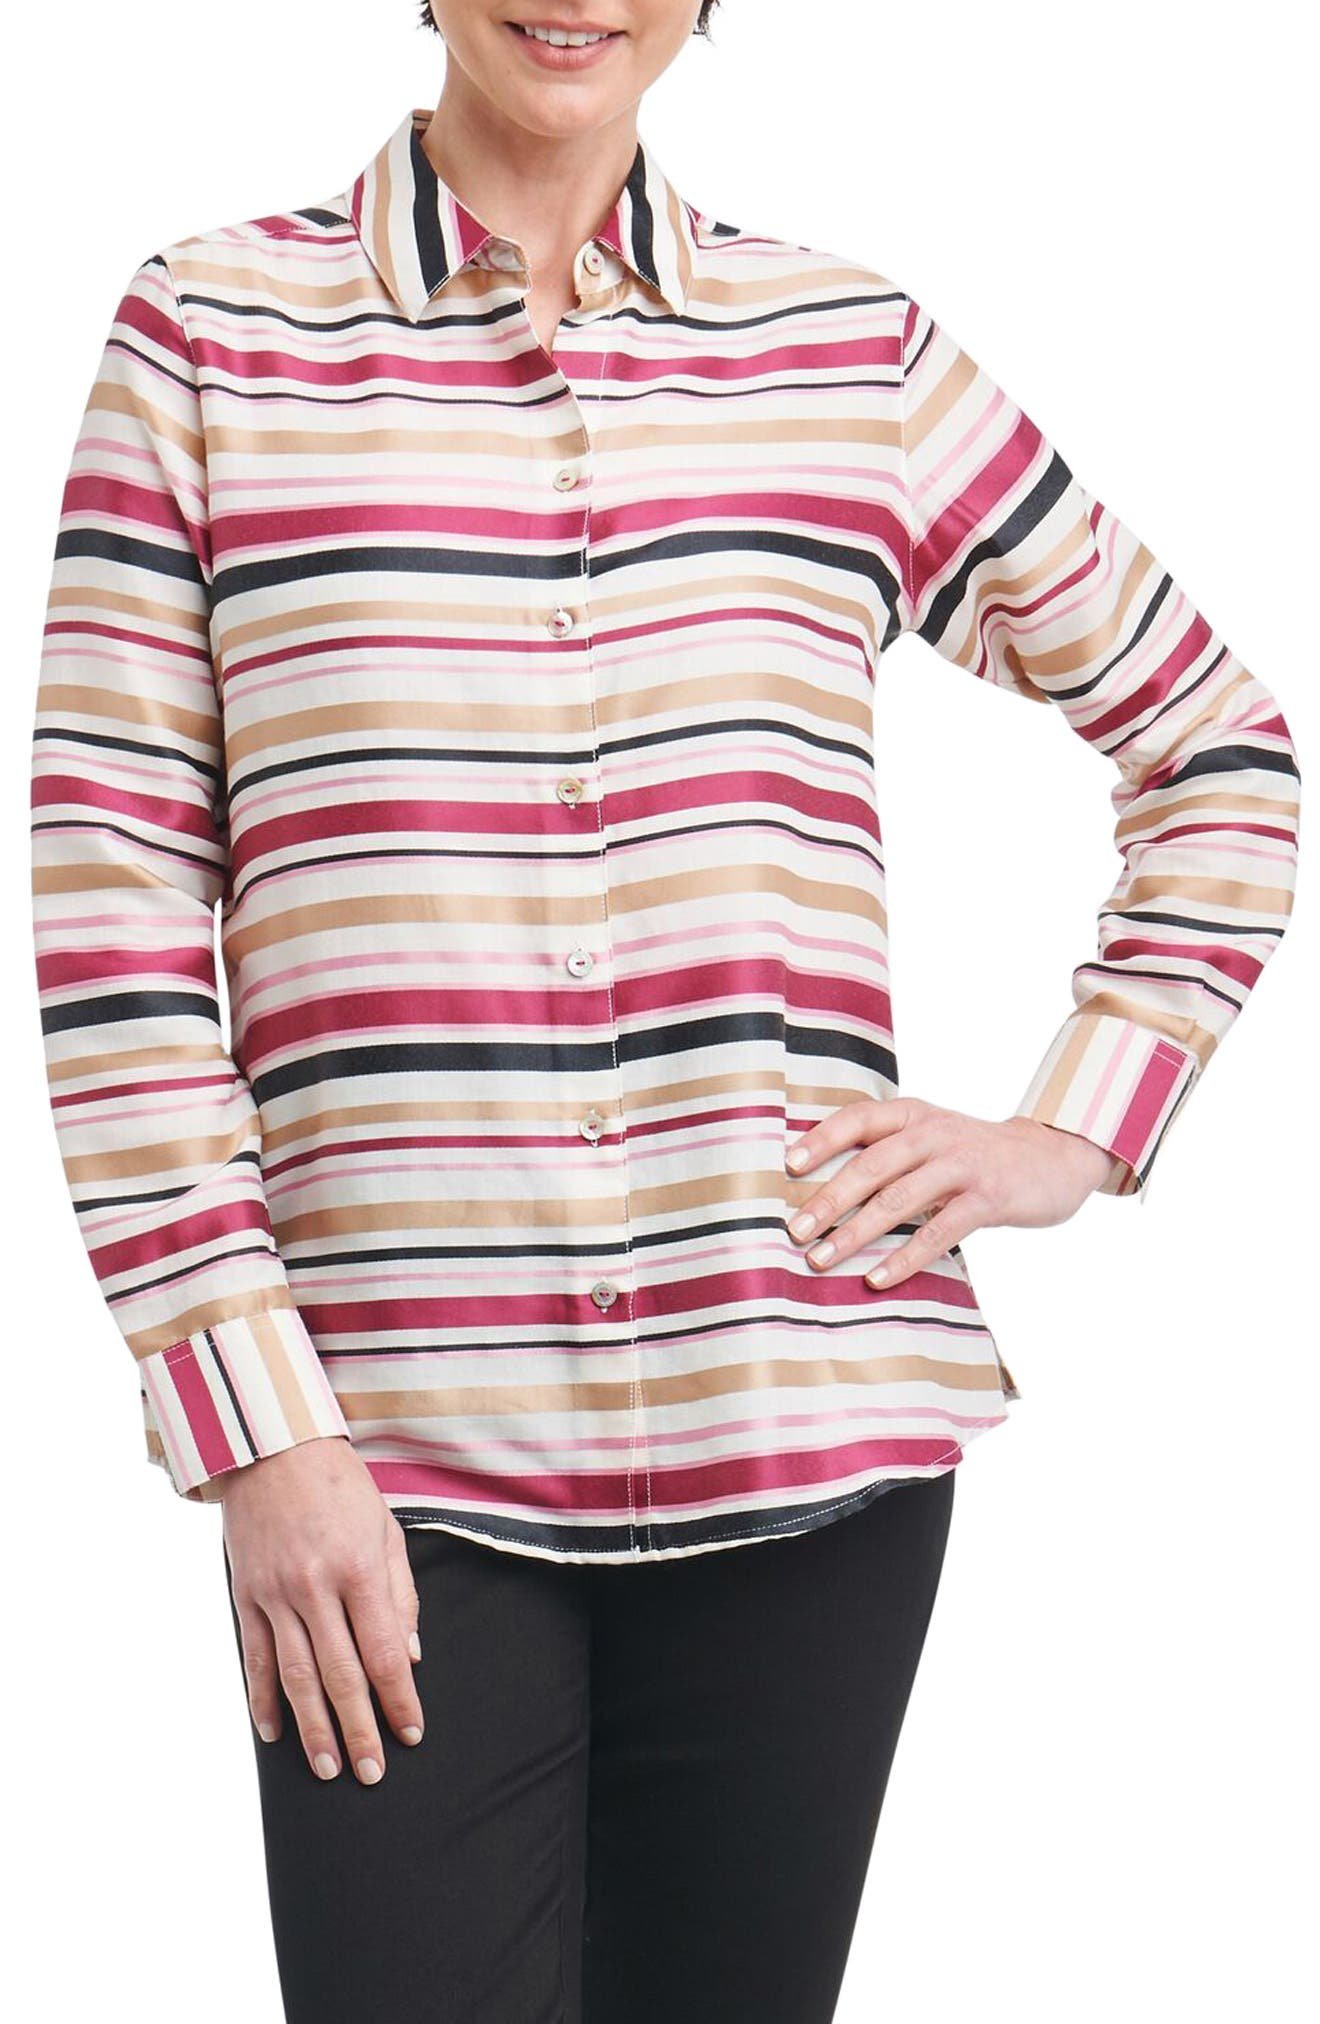 Main Image - Foxcroft Addison Stripe Print Sateen Shirt (Regular & Petite)